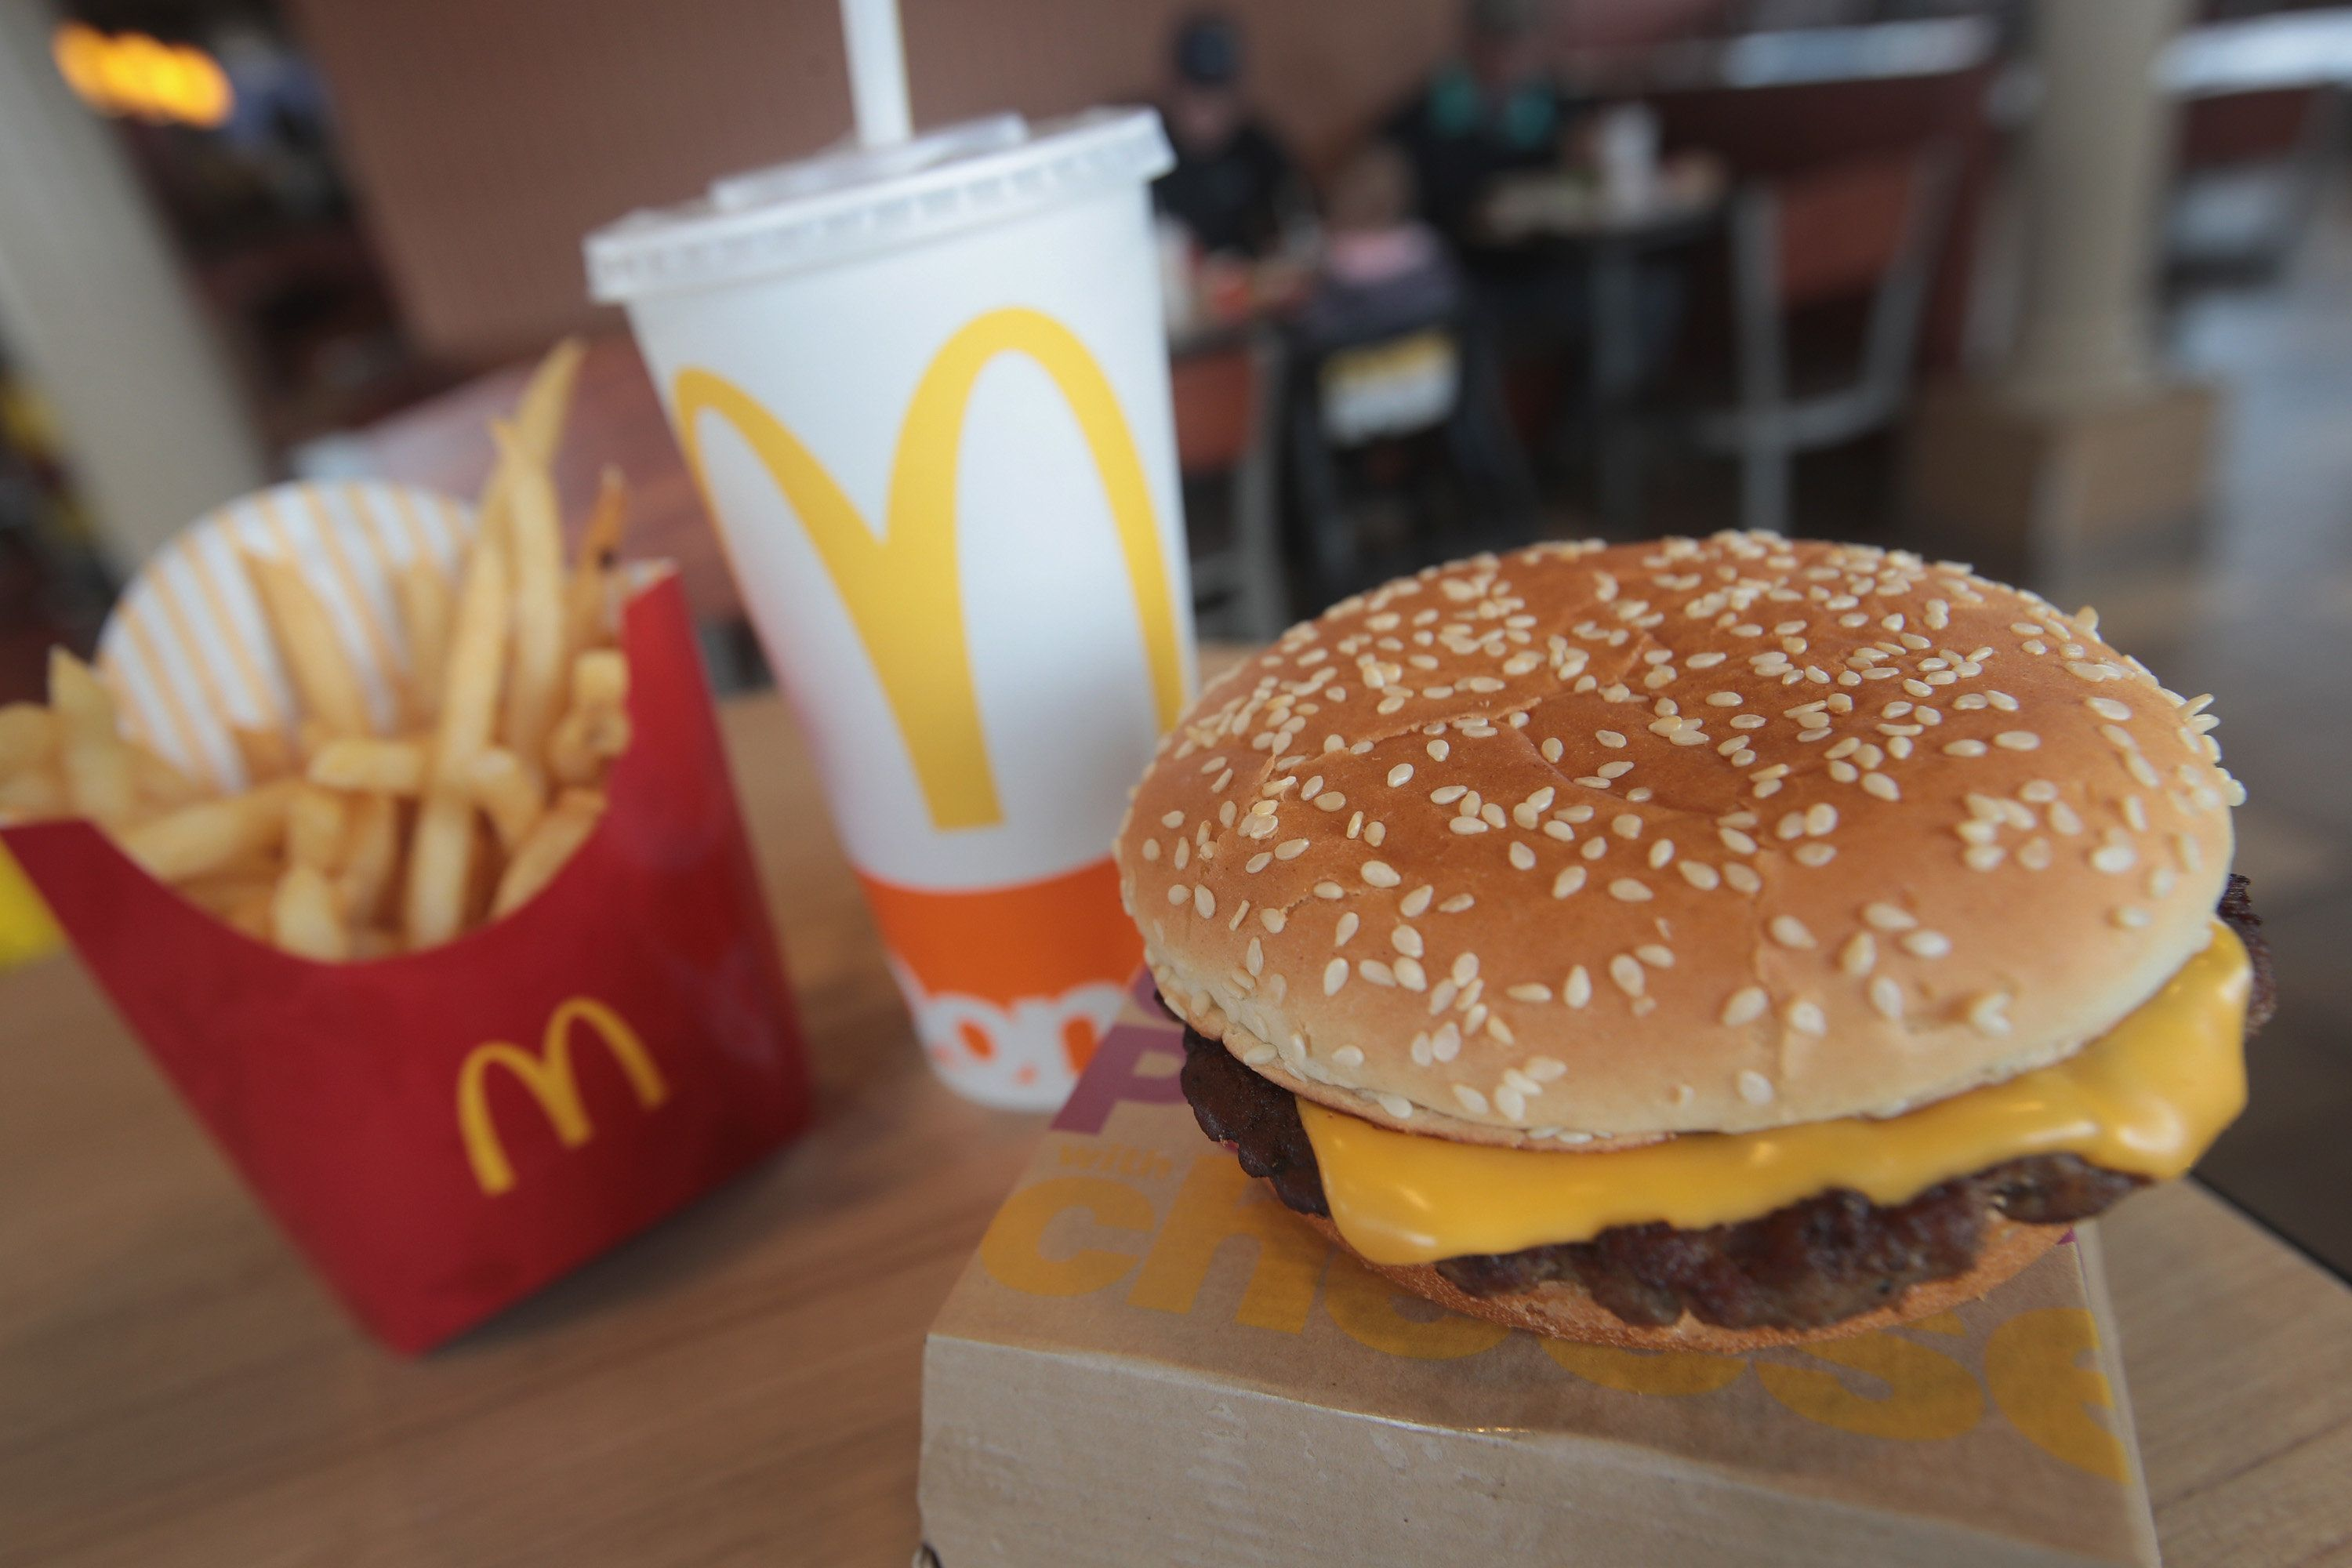 EFFINGHAM, IL - MARCH 30:  A Quarter Pounder hamburger is served at a McDonald's restaurant on March 30, 2017 in Effingham, Illinois. McDonald's announced today that it will start making the burger with fresh beef patties instead of the frozen beef that it currently uses.  (Photo Illustration by Scott Olson/Getty Images)